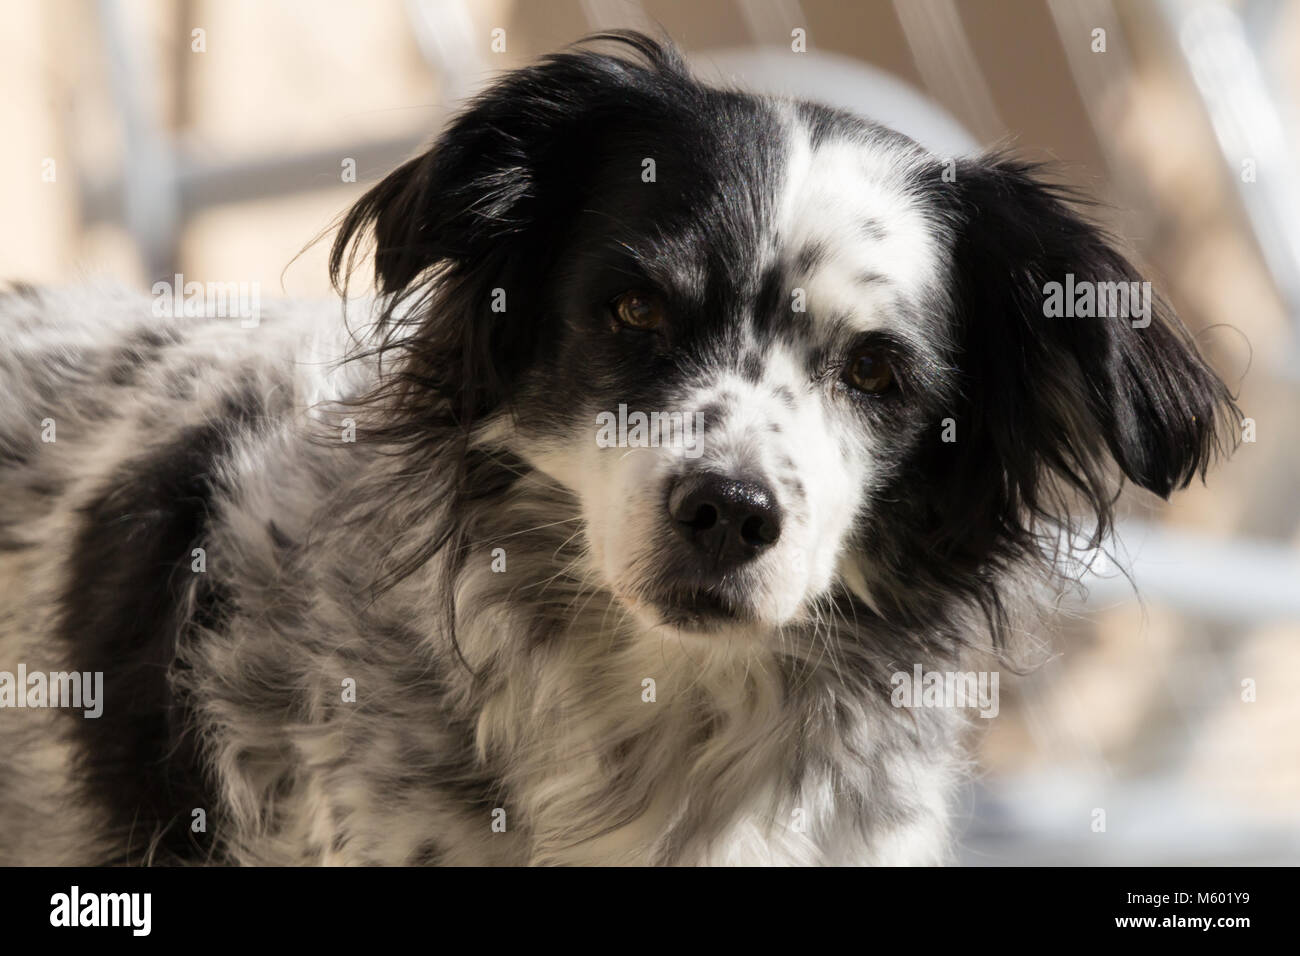 Dog, Canis lupus familiaris,  Springer Spaniel Cross,  Adult Male, Taken February 2018 - Stock Image